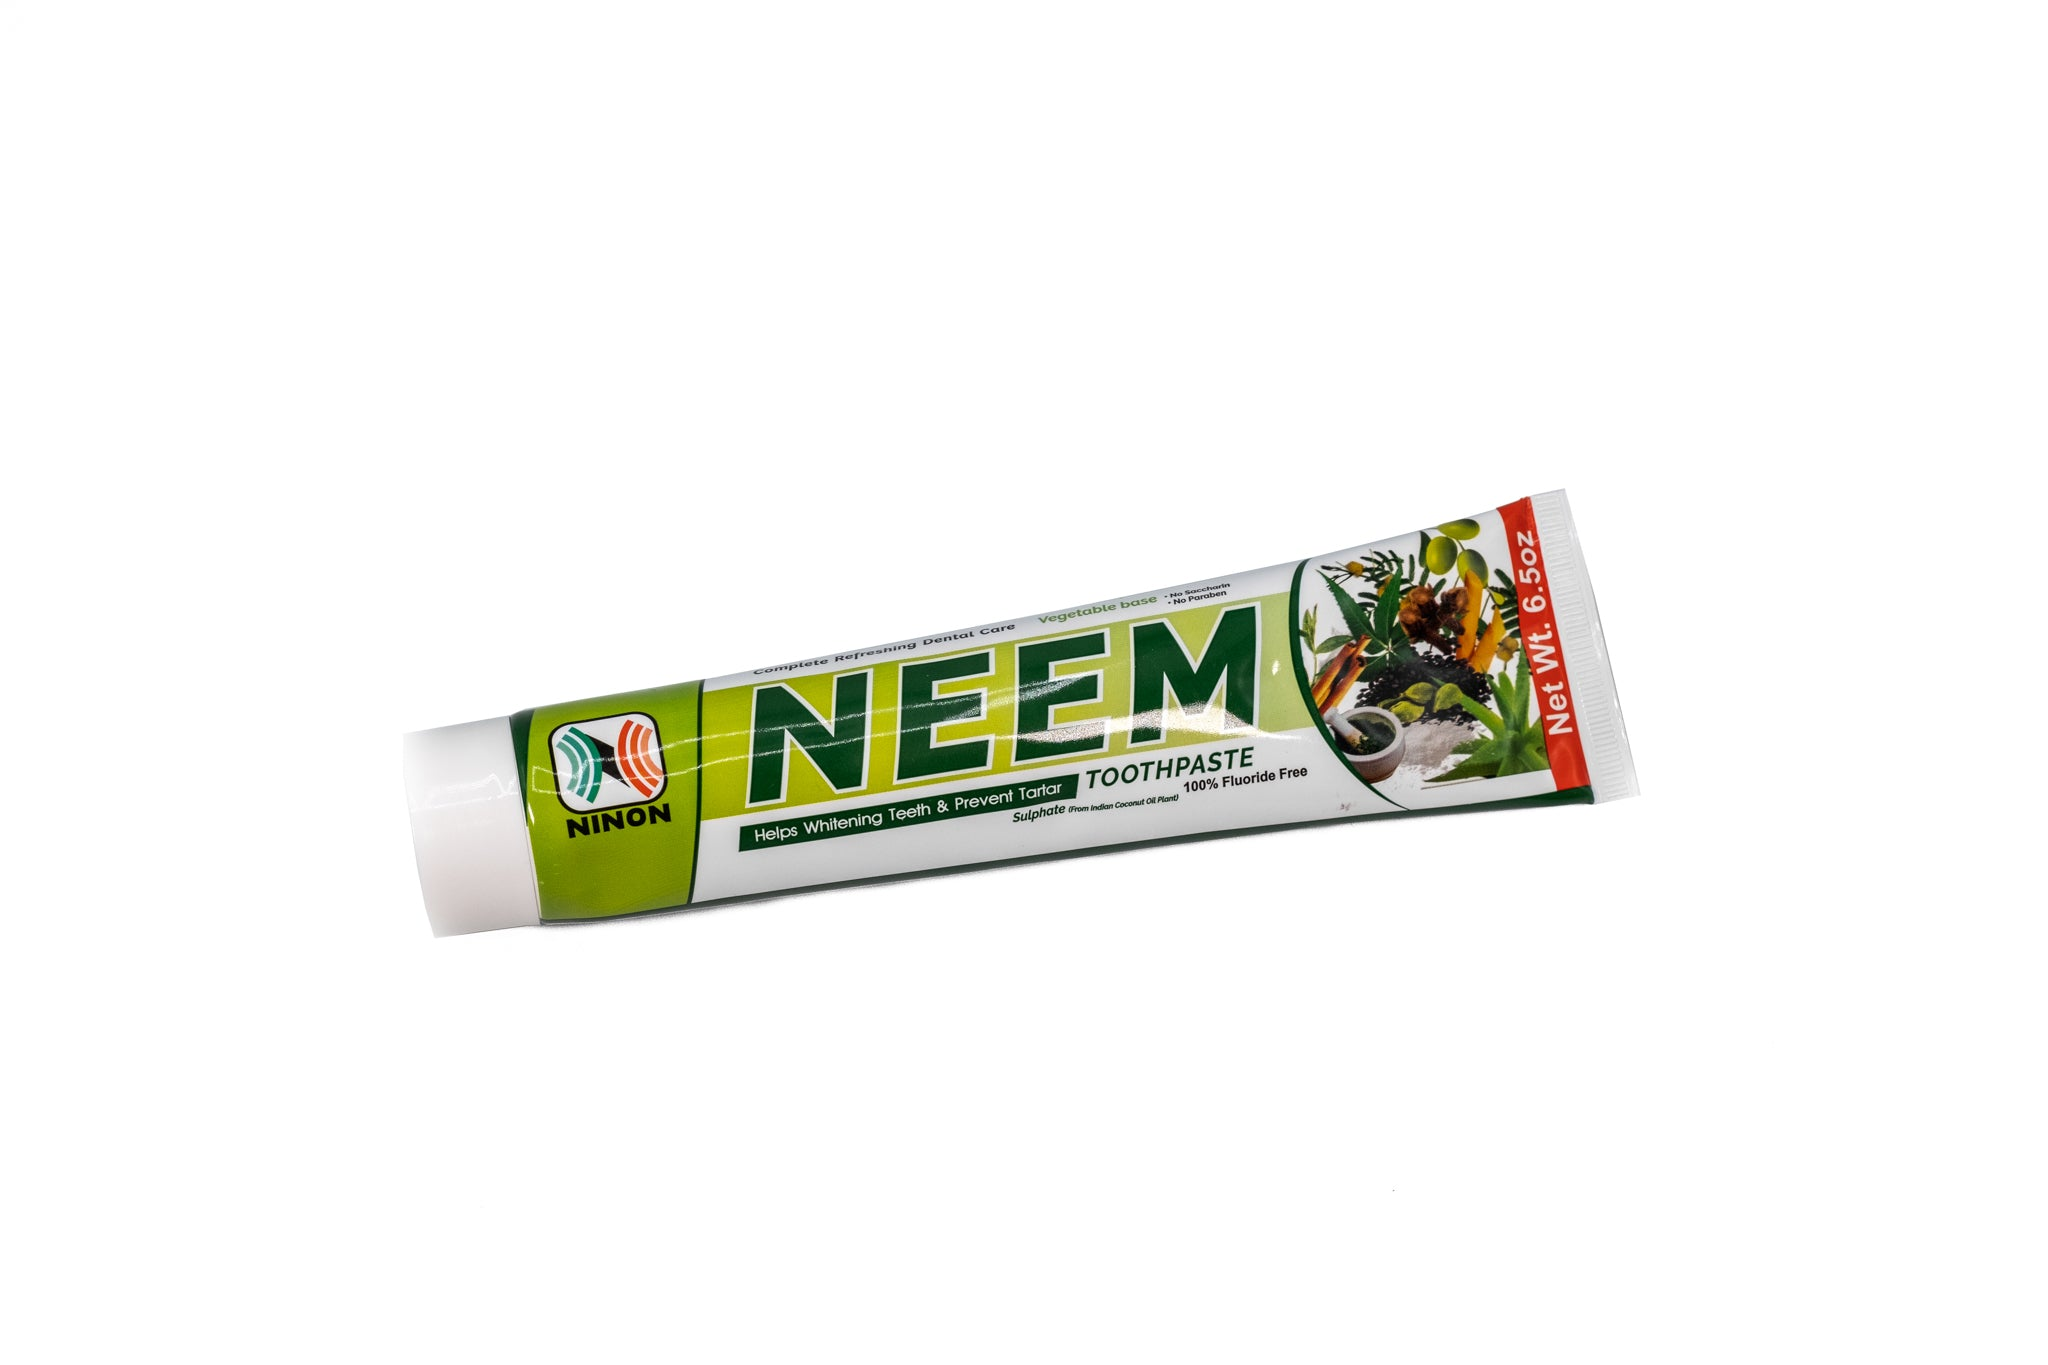 Ninon Tooth Paste Bundle (Neem Tooth Paste, Herbal Tooth Paste, Miswak Tooth Paste, & Charcoal Tooth Paste)